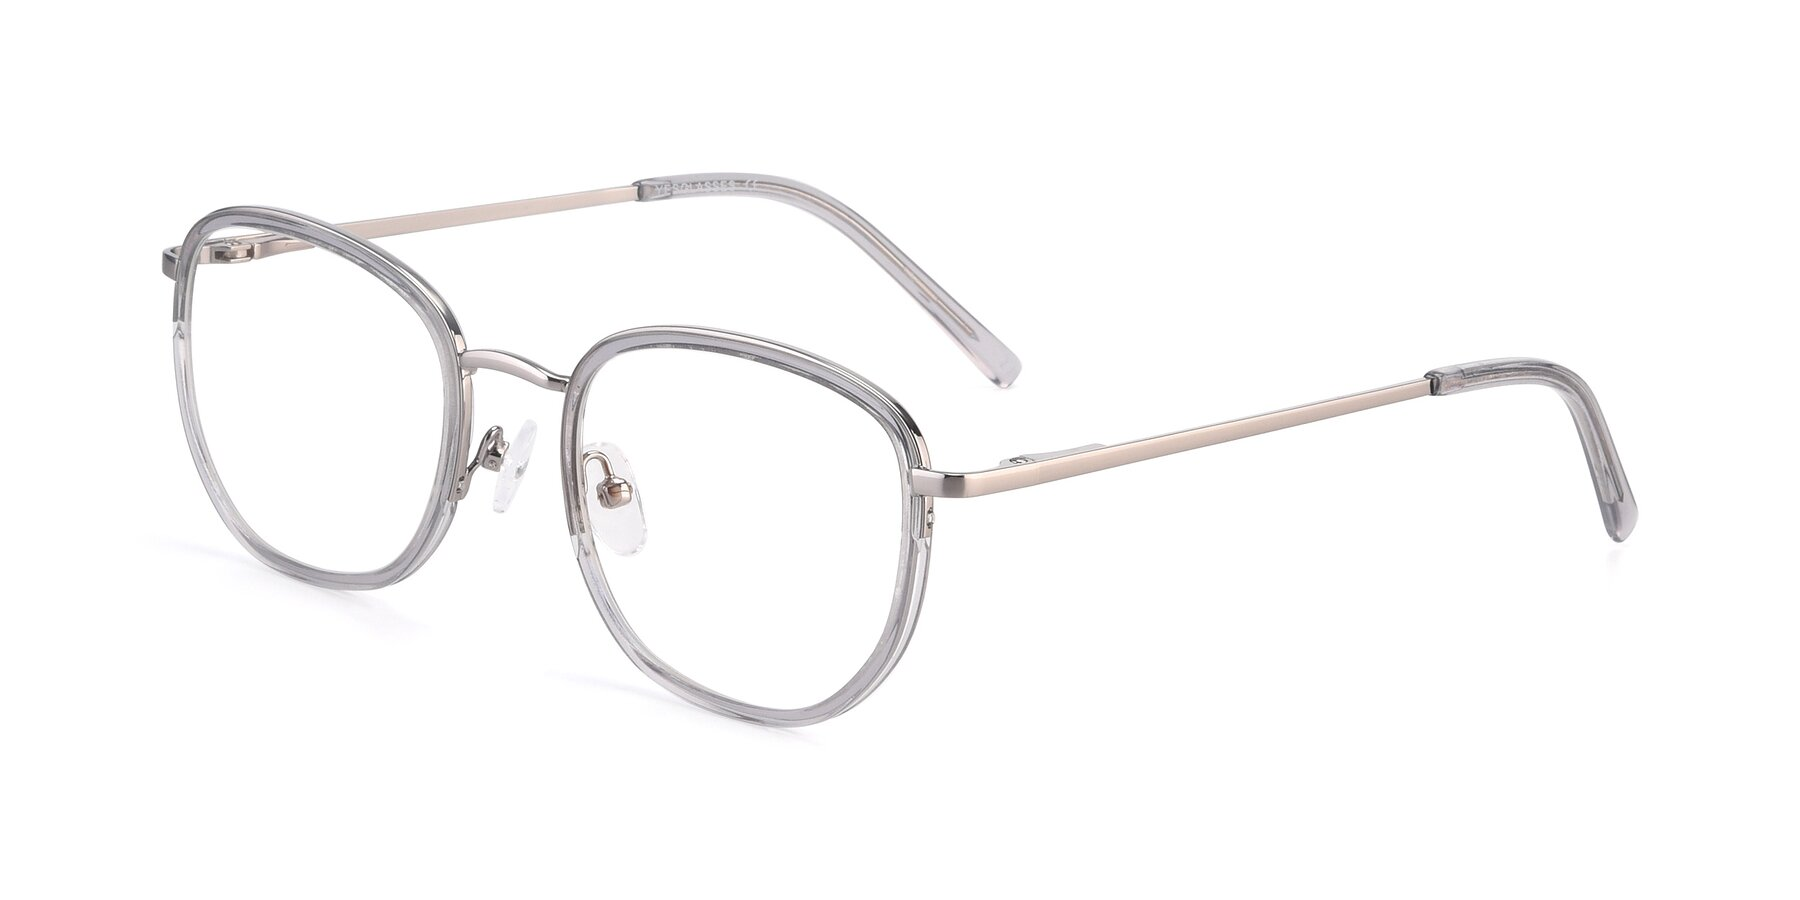 Angle of 17702 in Silver-Transparent with Clear Eyeglass Lenses